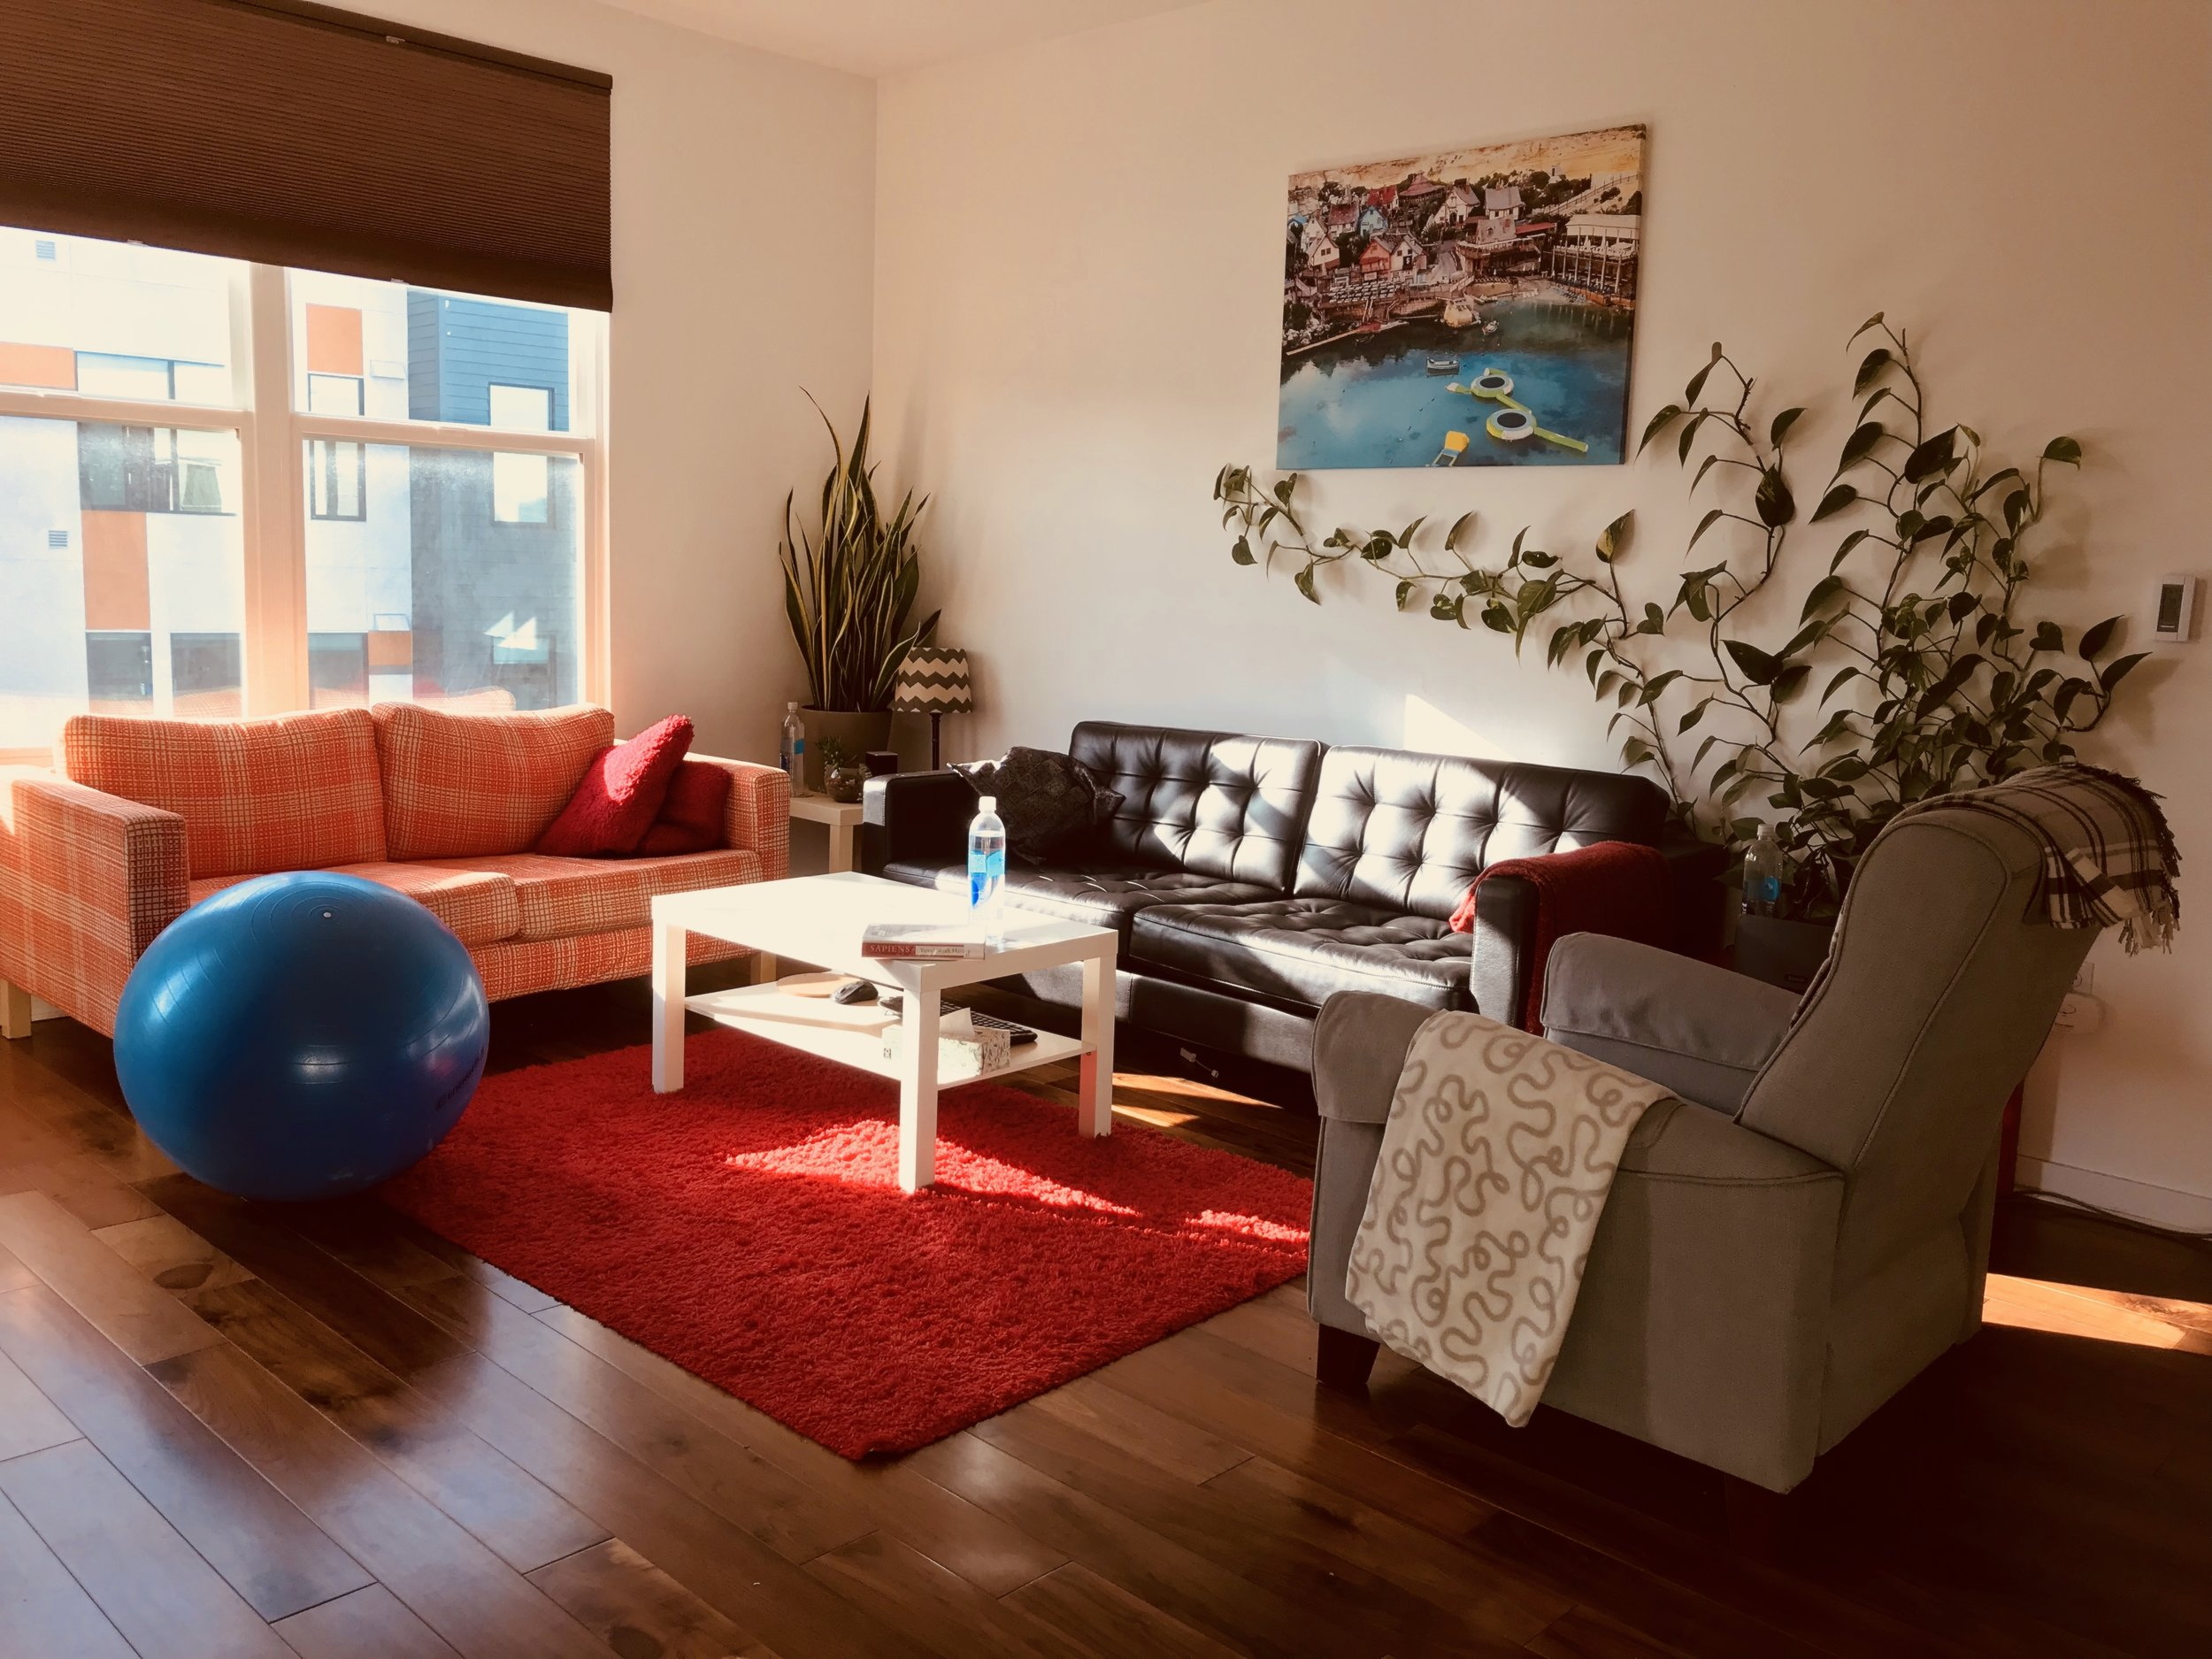 Our current apartment living room in San Francisco, CA - 99% furnished with IKEA products